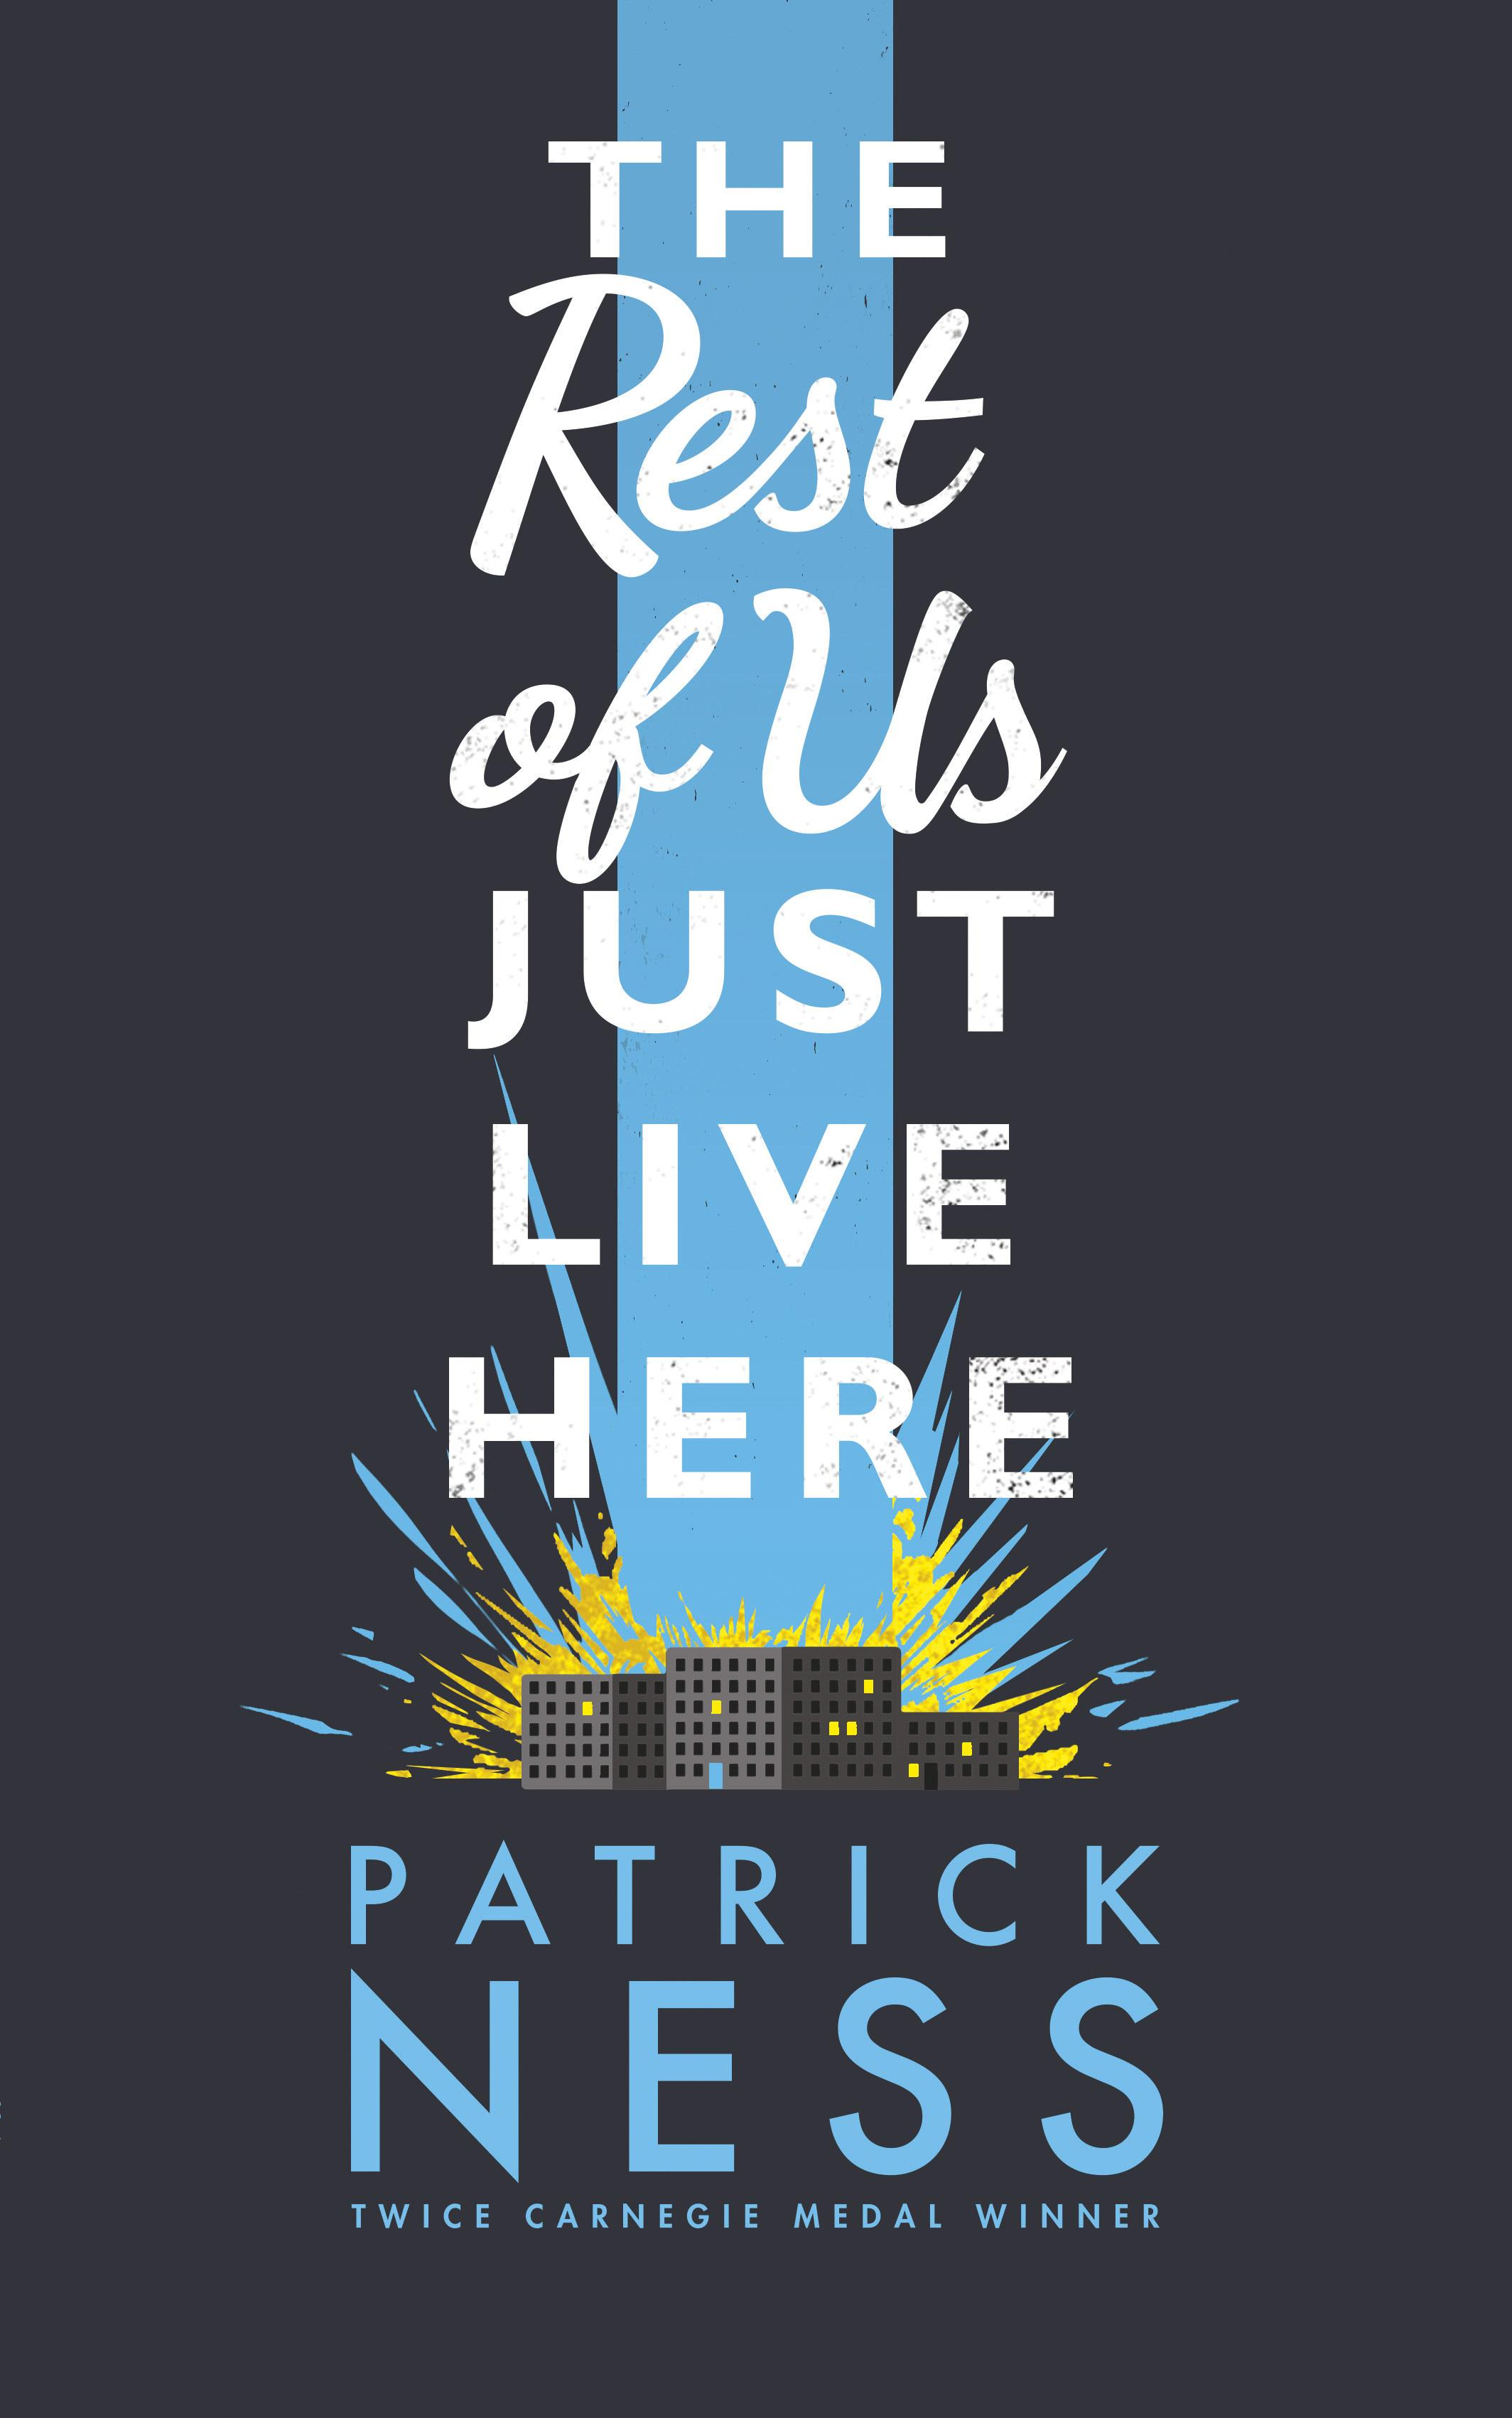 The Rest of Us Just Live Here (Exclusive edition)